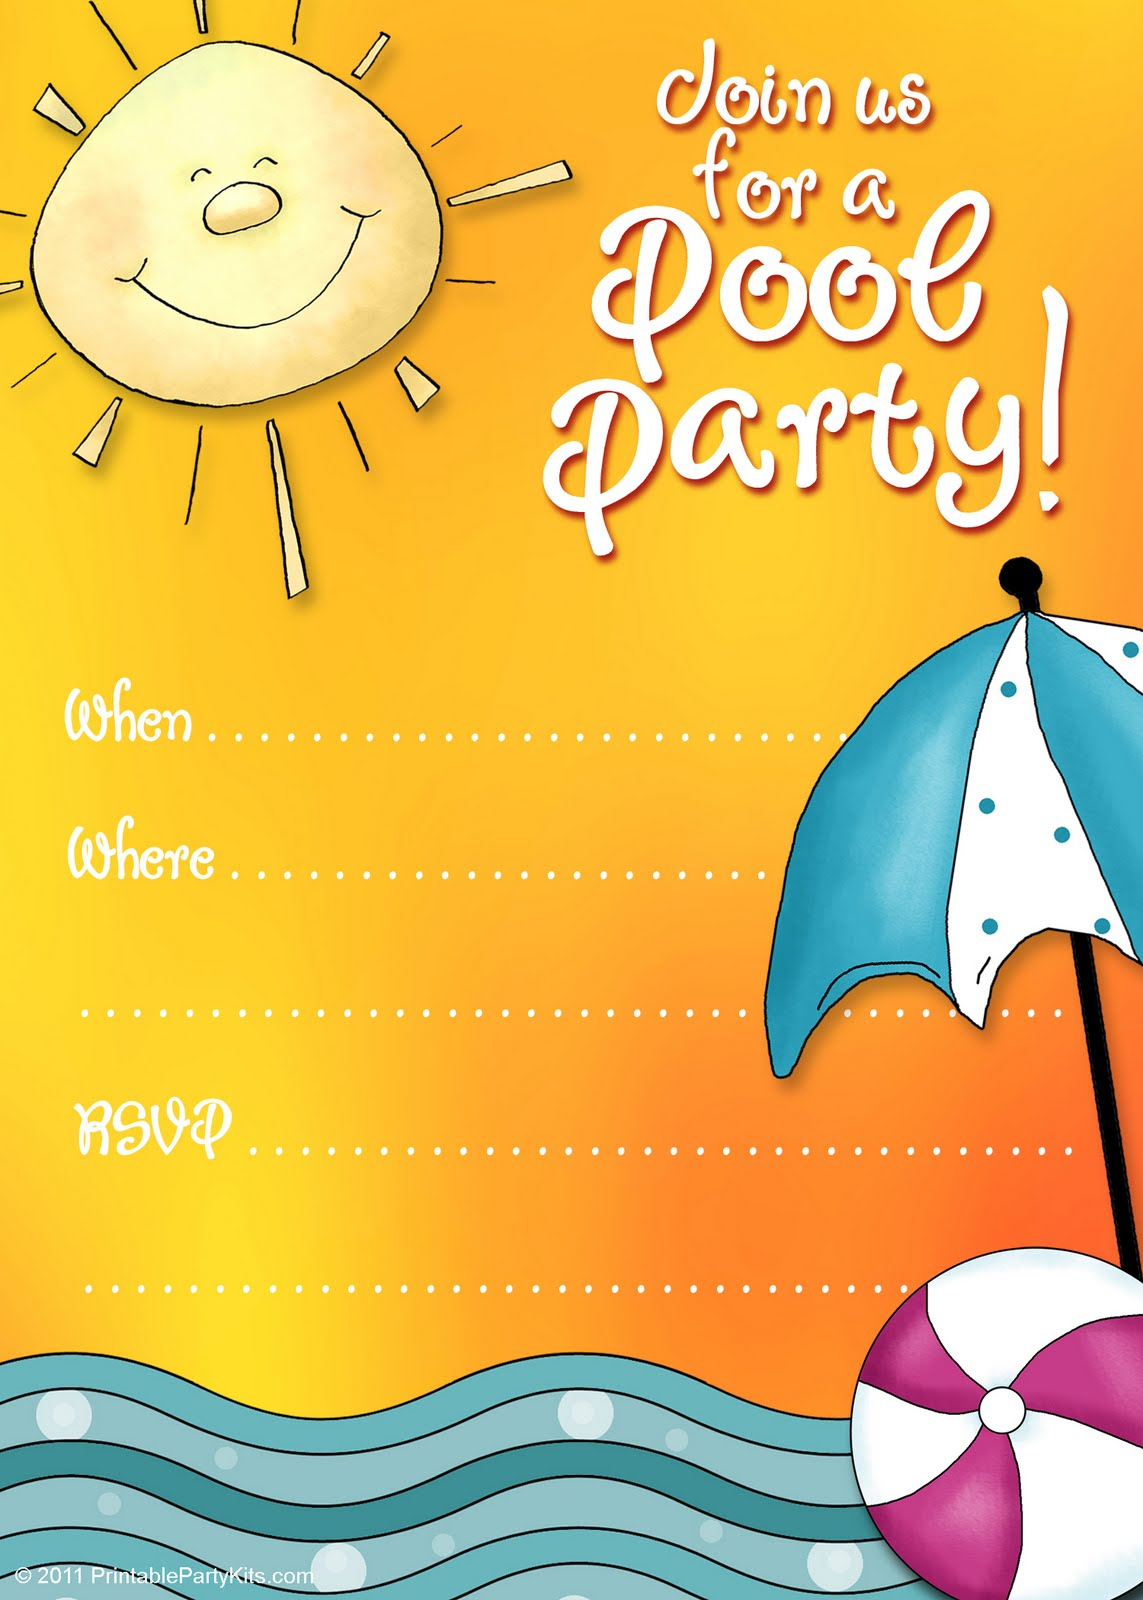 45 Pool Party Invitations   Kittybabylove - Free Printable Pool Party Birthday Invitations